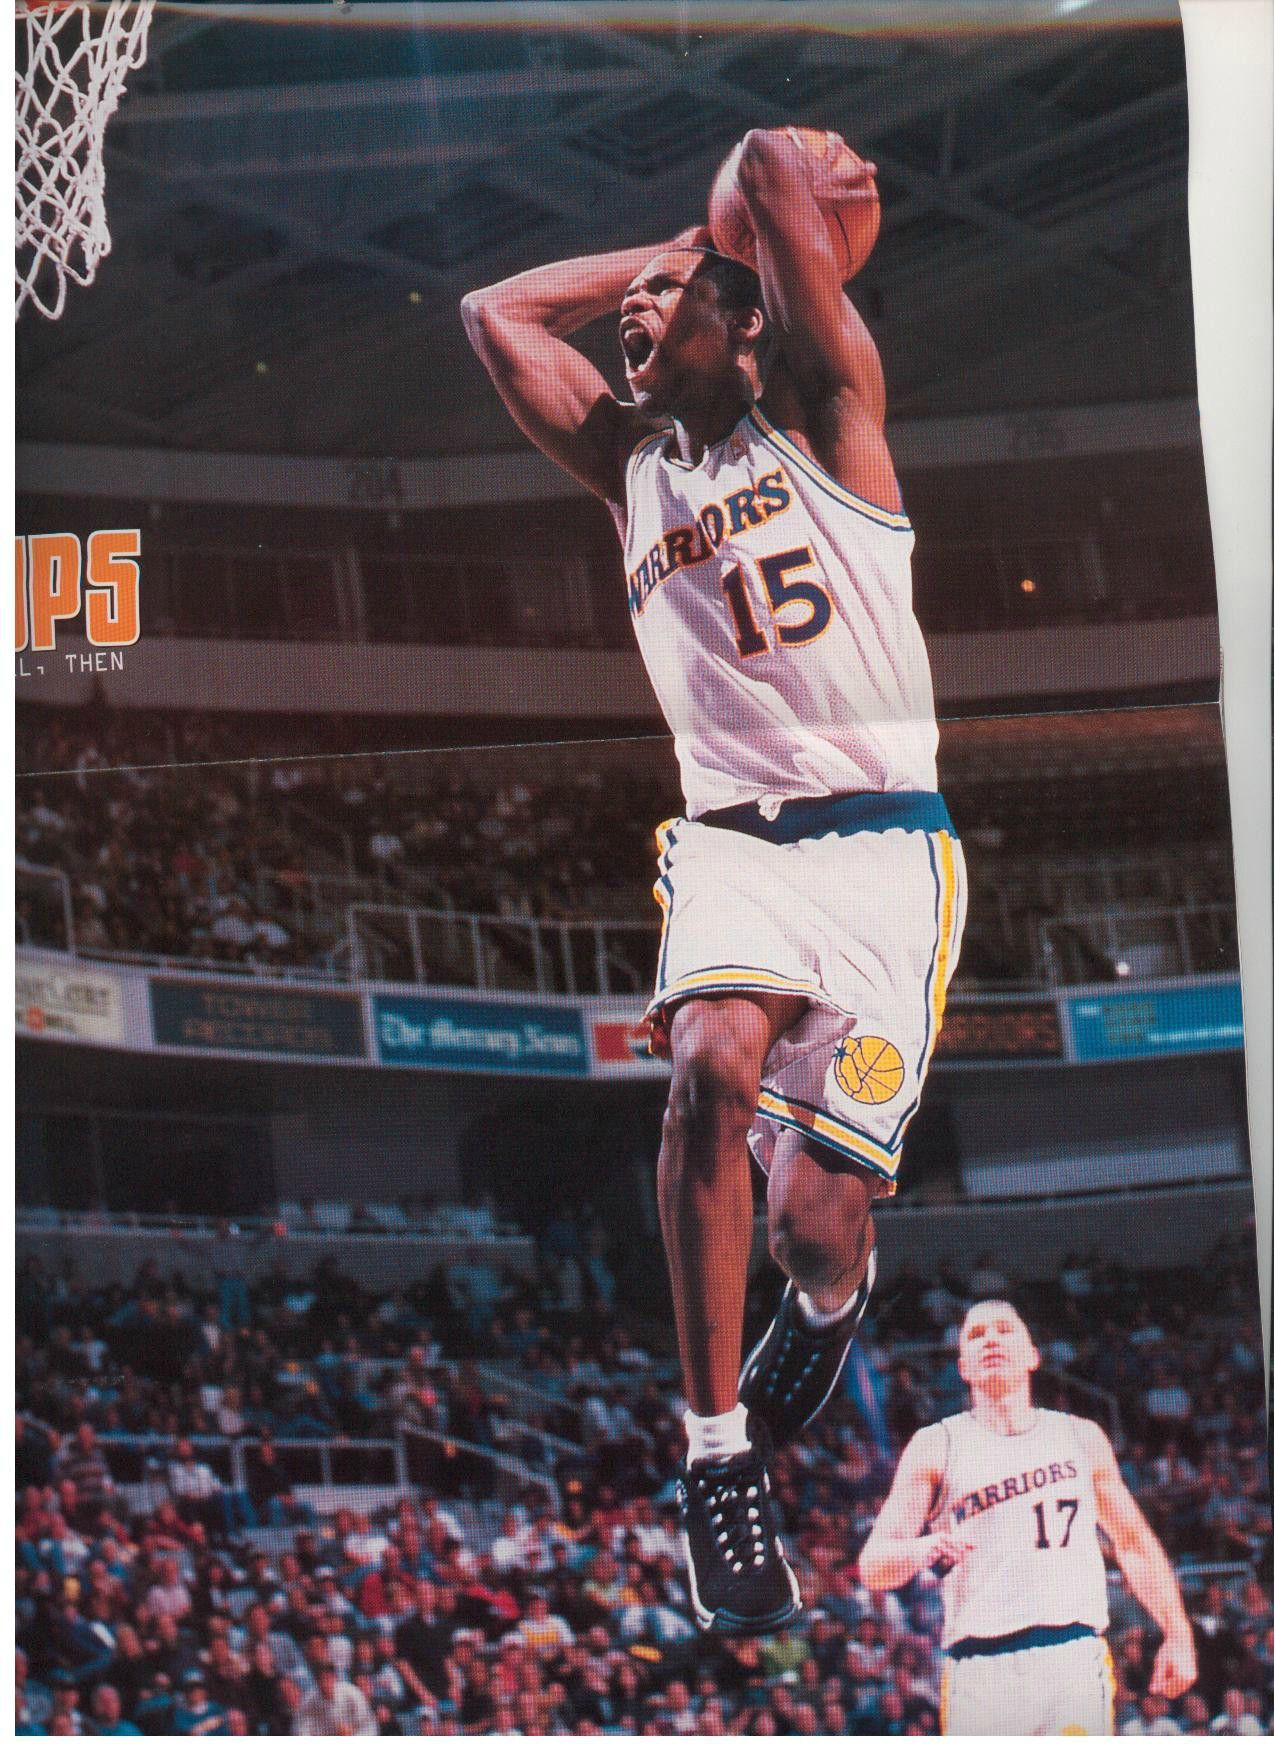 finest selection 3f2ab 68435 Latrell Sprewell, who played for the Golden State Warriors ...